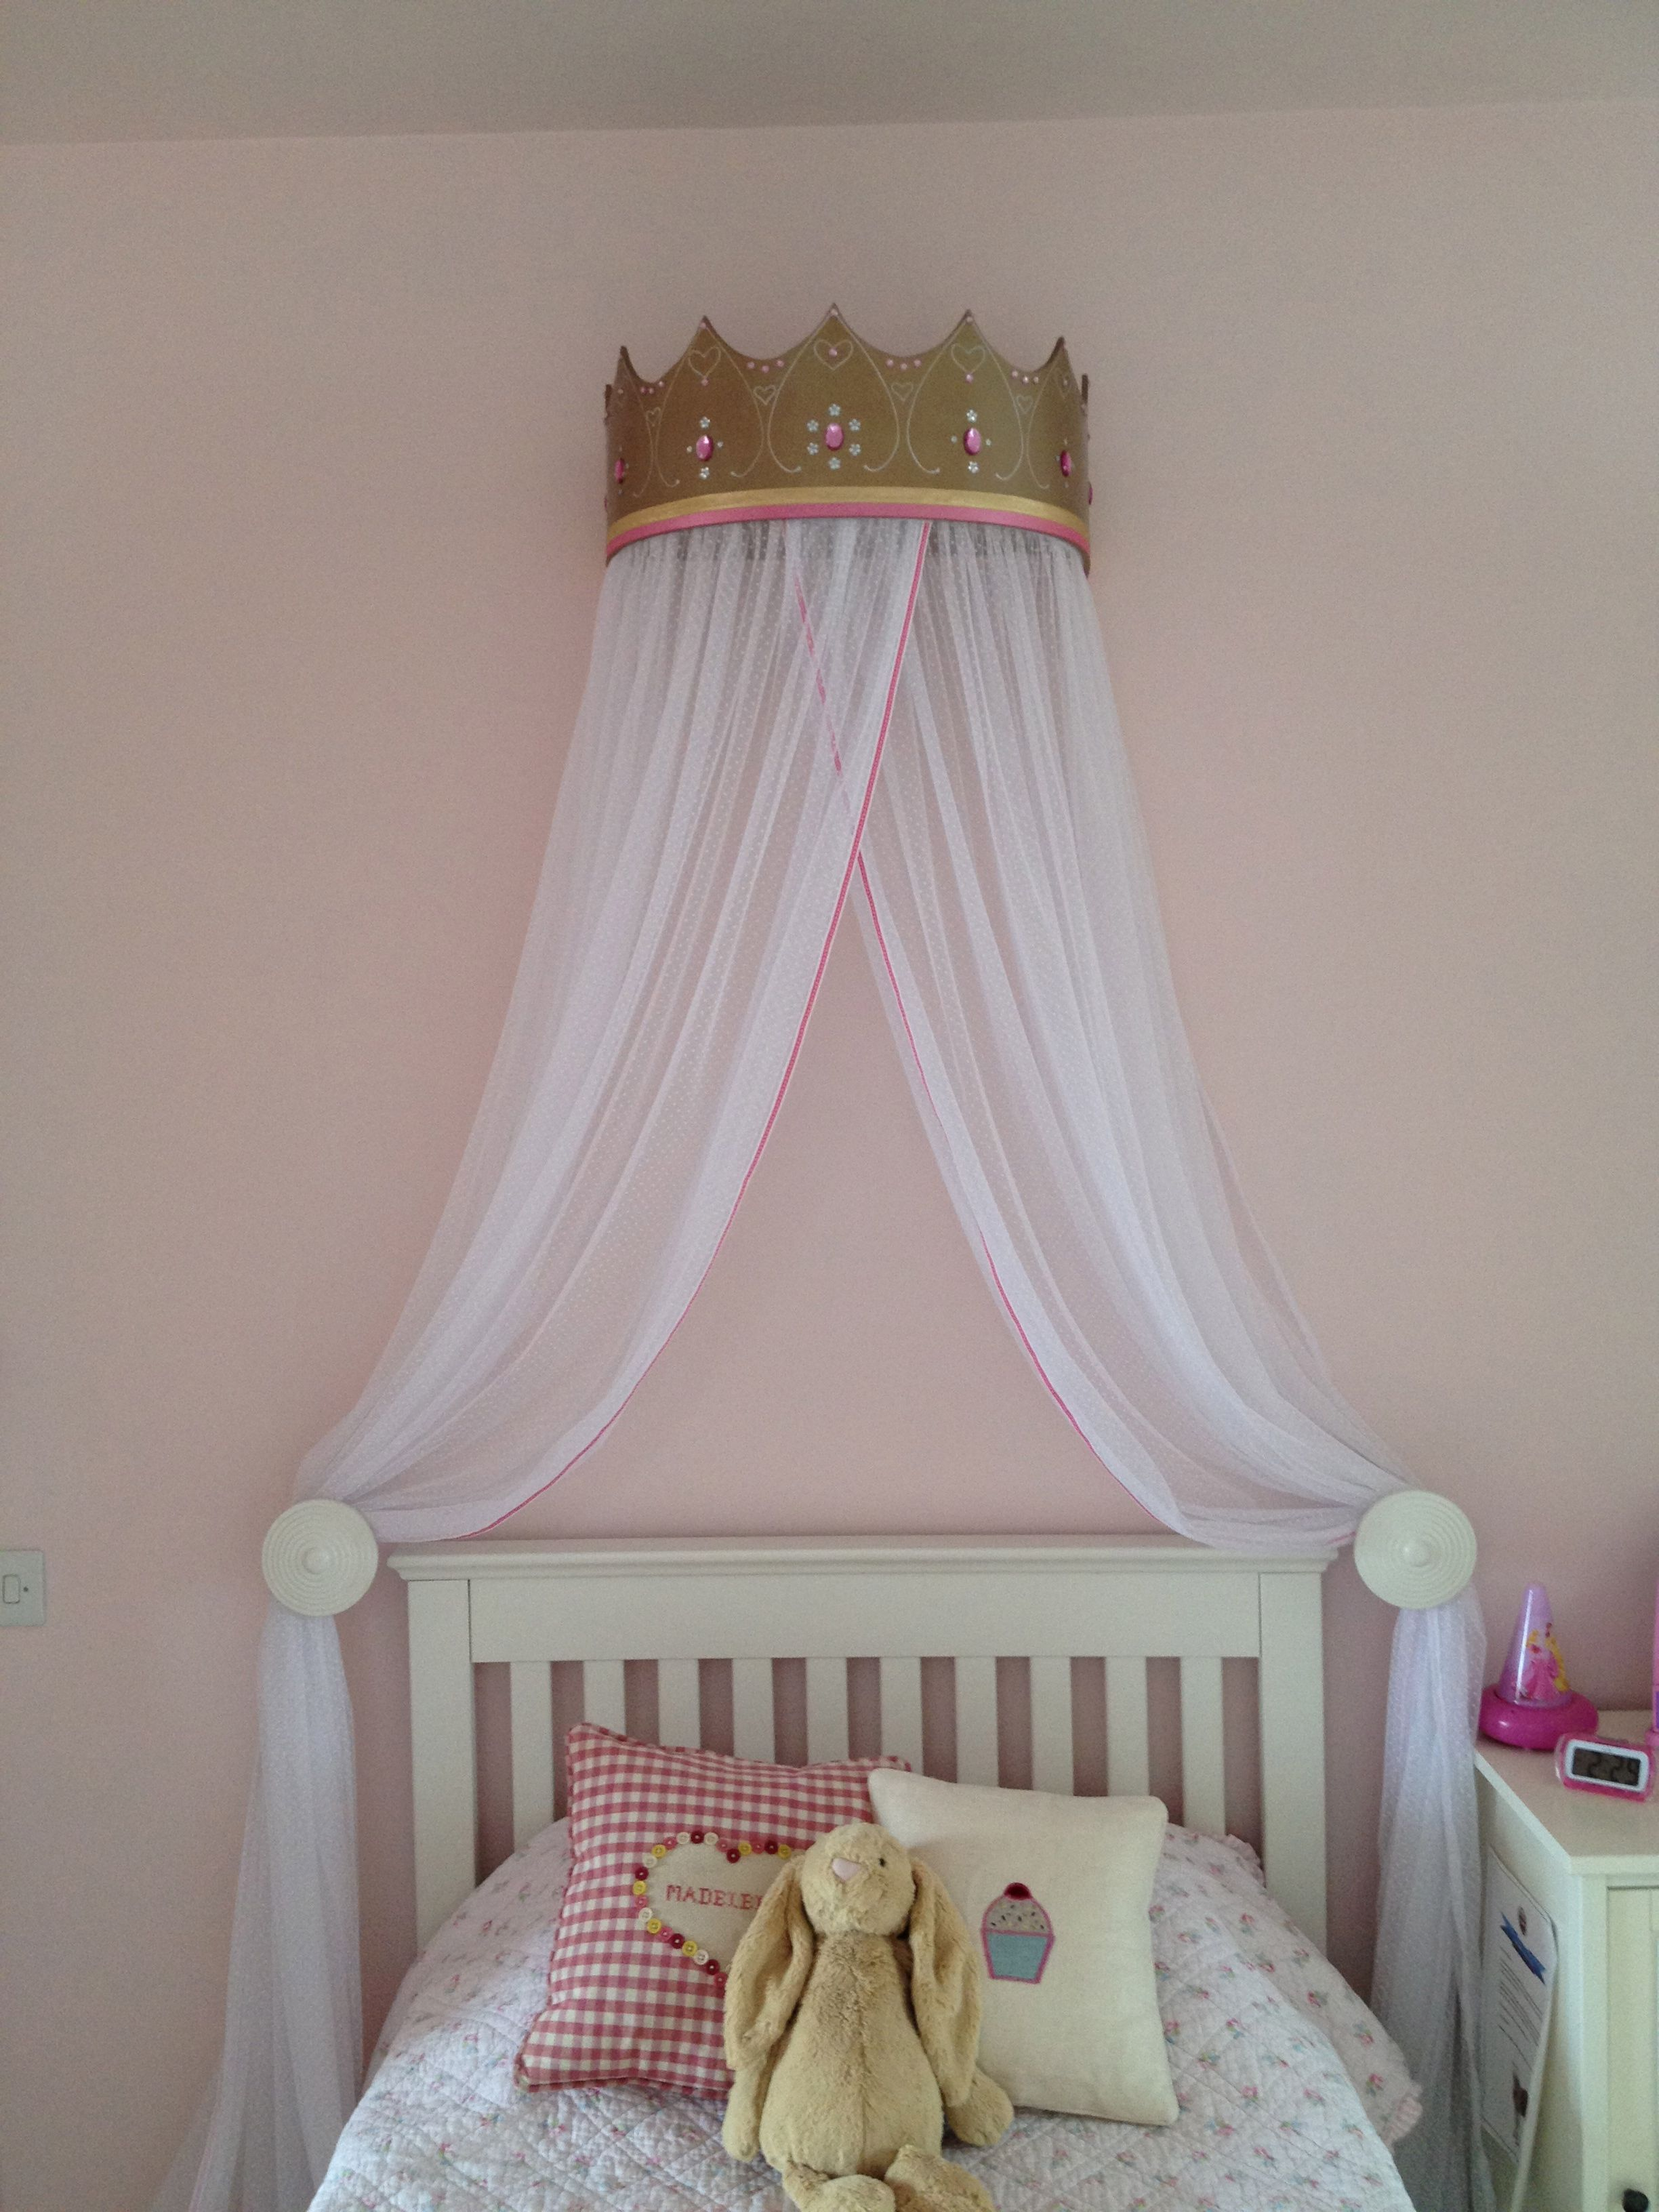 wall mounted bed canopy crown on the princess crown and bed canopy i made for maddie s bedroom bedroom design trends modern bedroom furniture sets bedroom door design the princess crown and bed canopy i